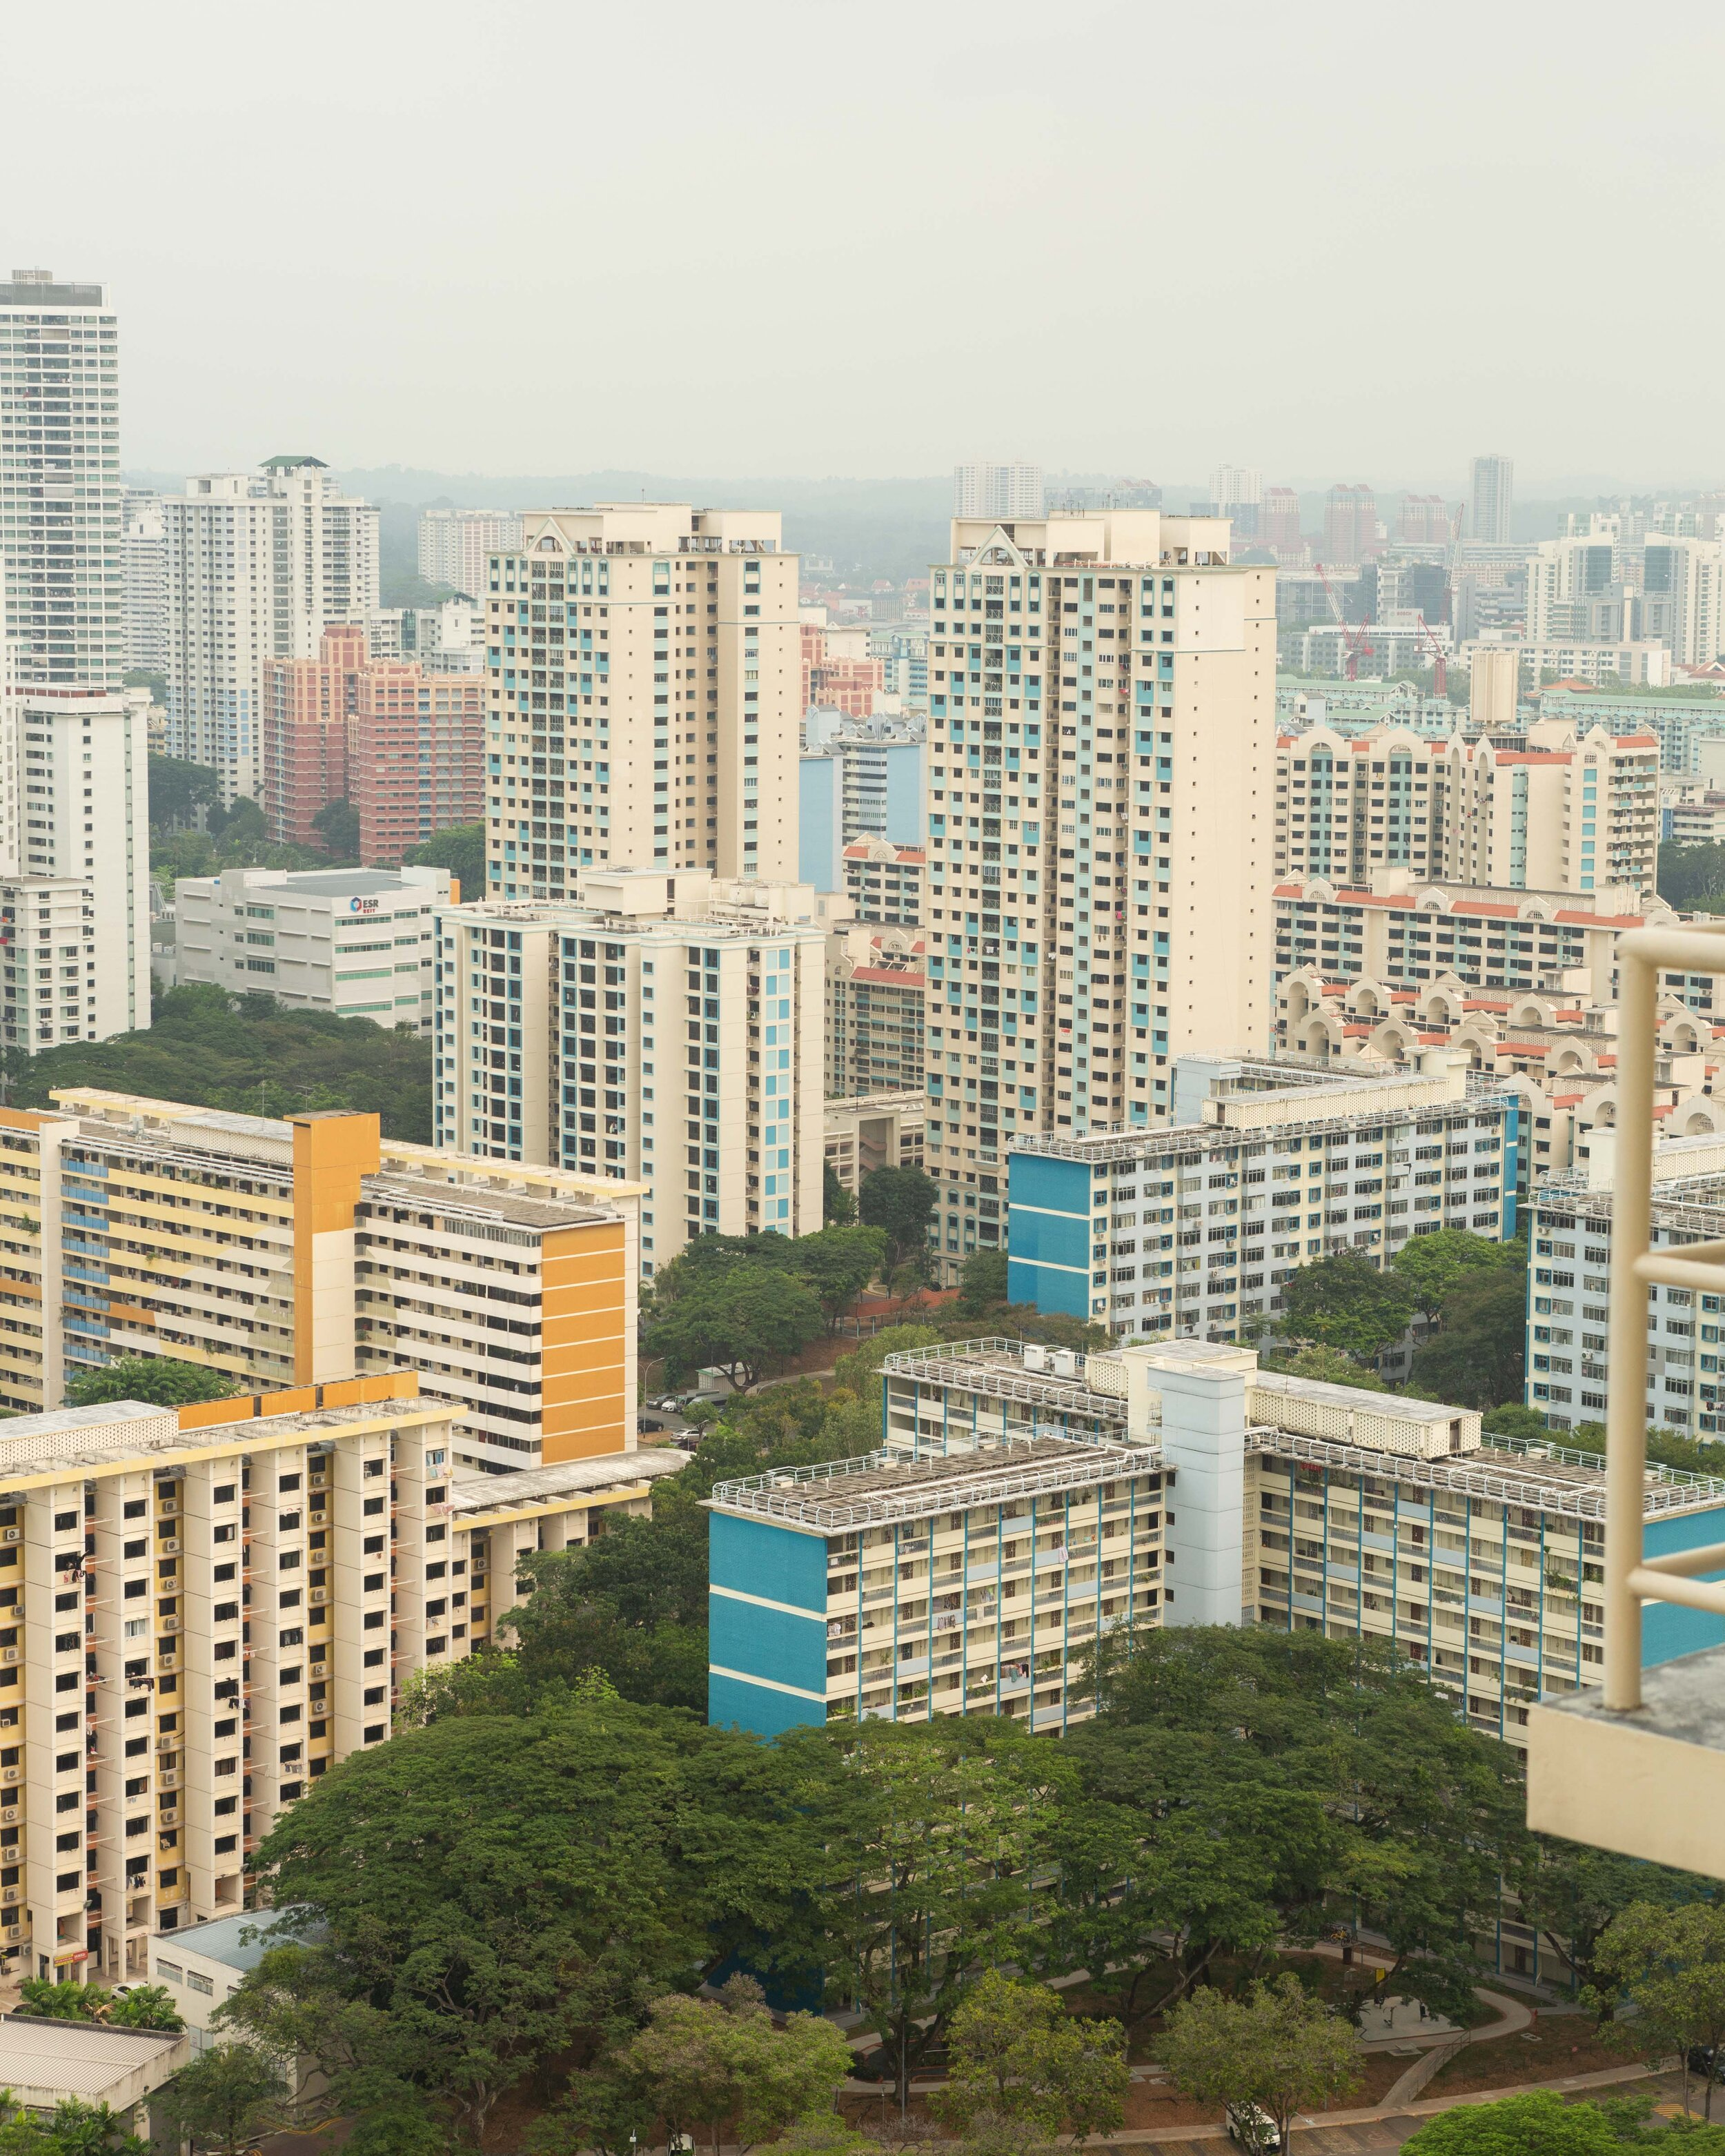 264 Toa Payoh East 190920 062, image by Andrew Campbell Nelson.jpg